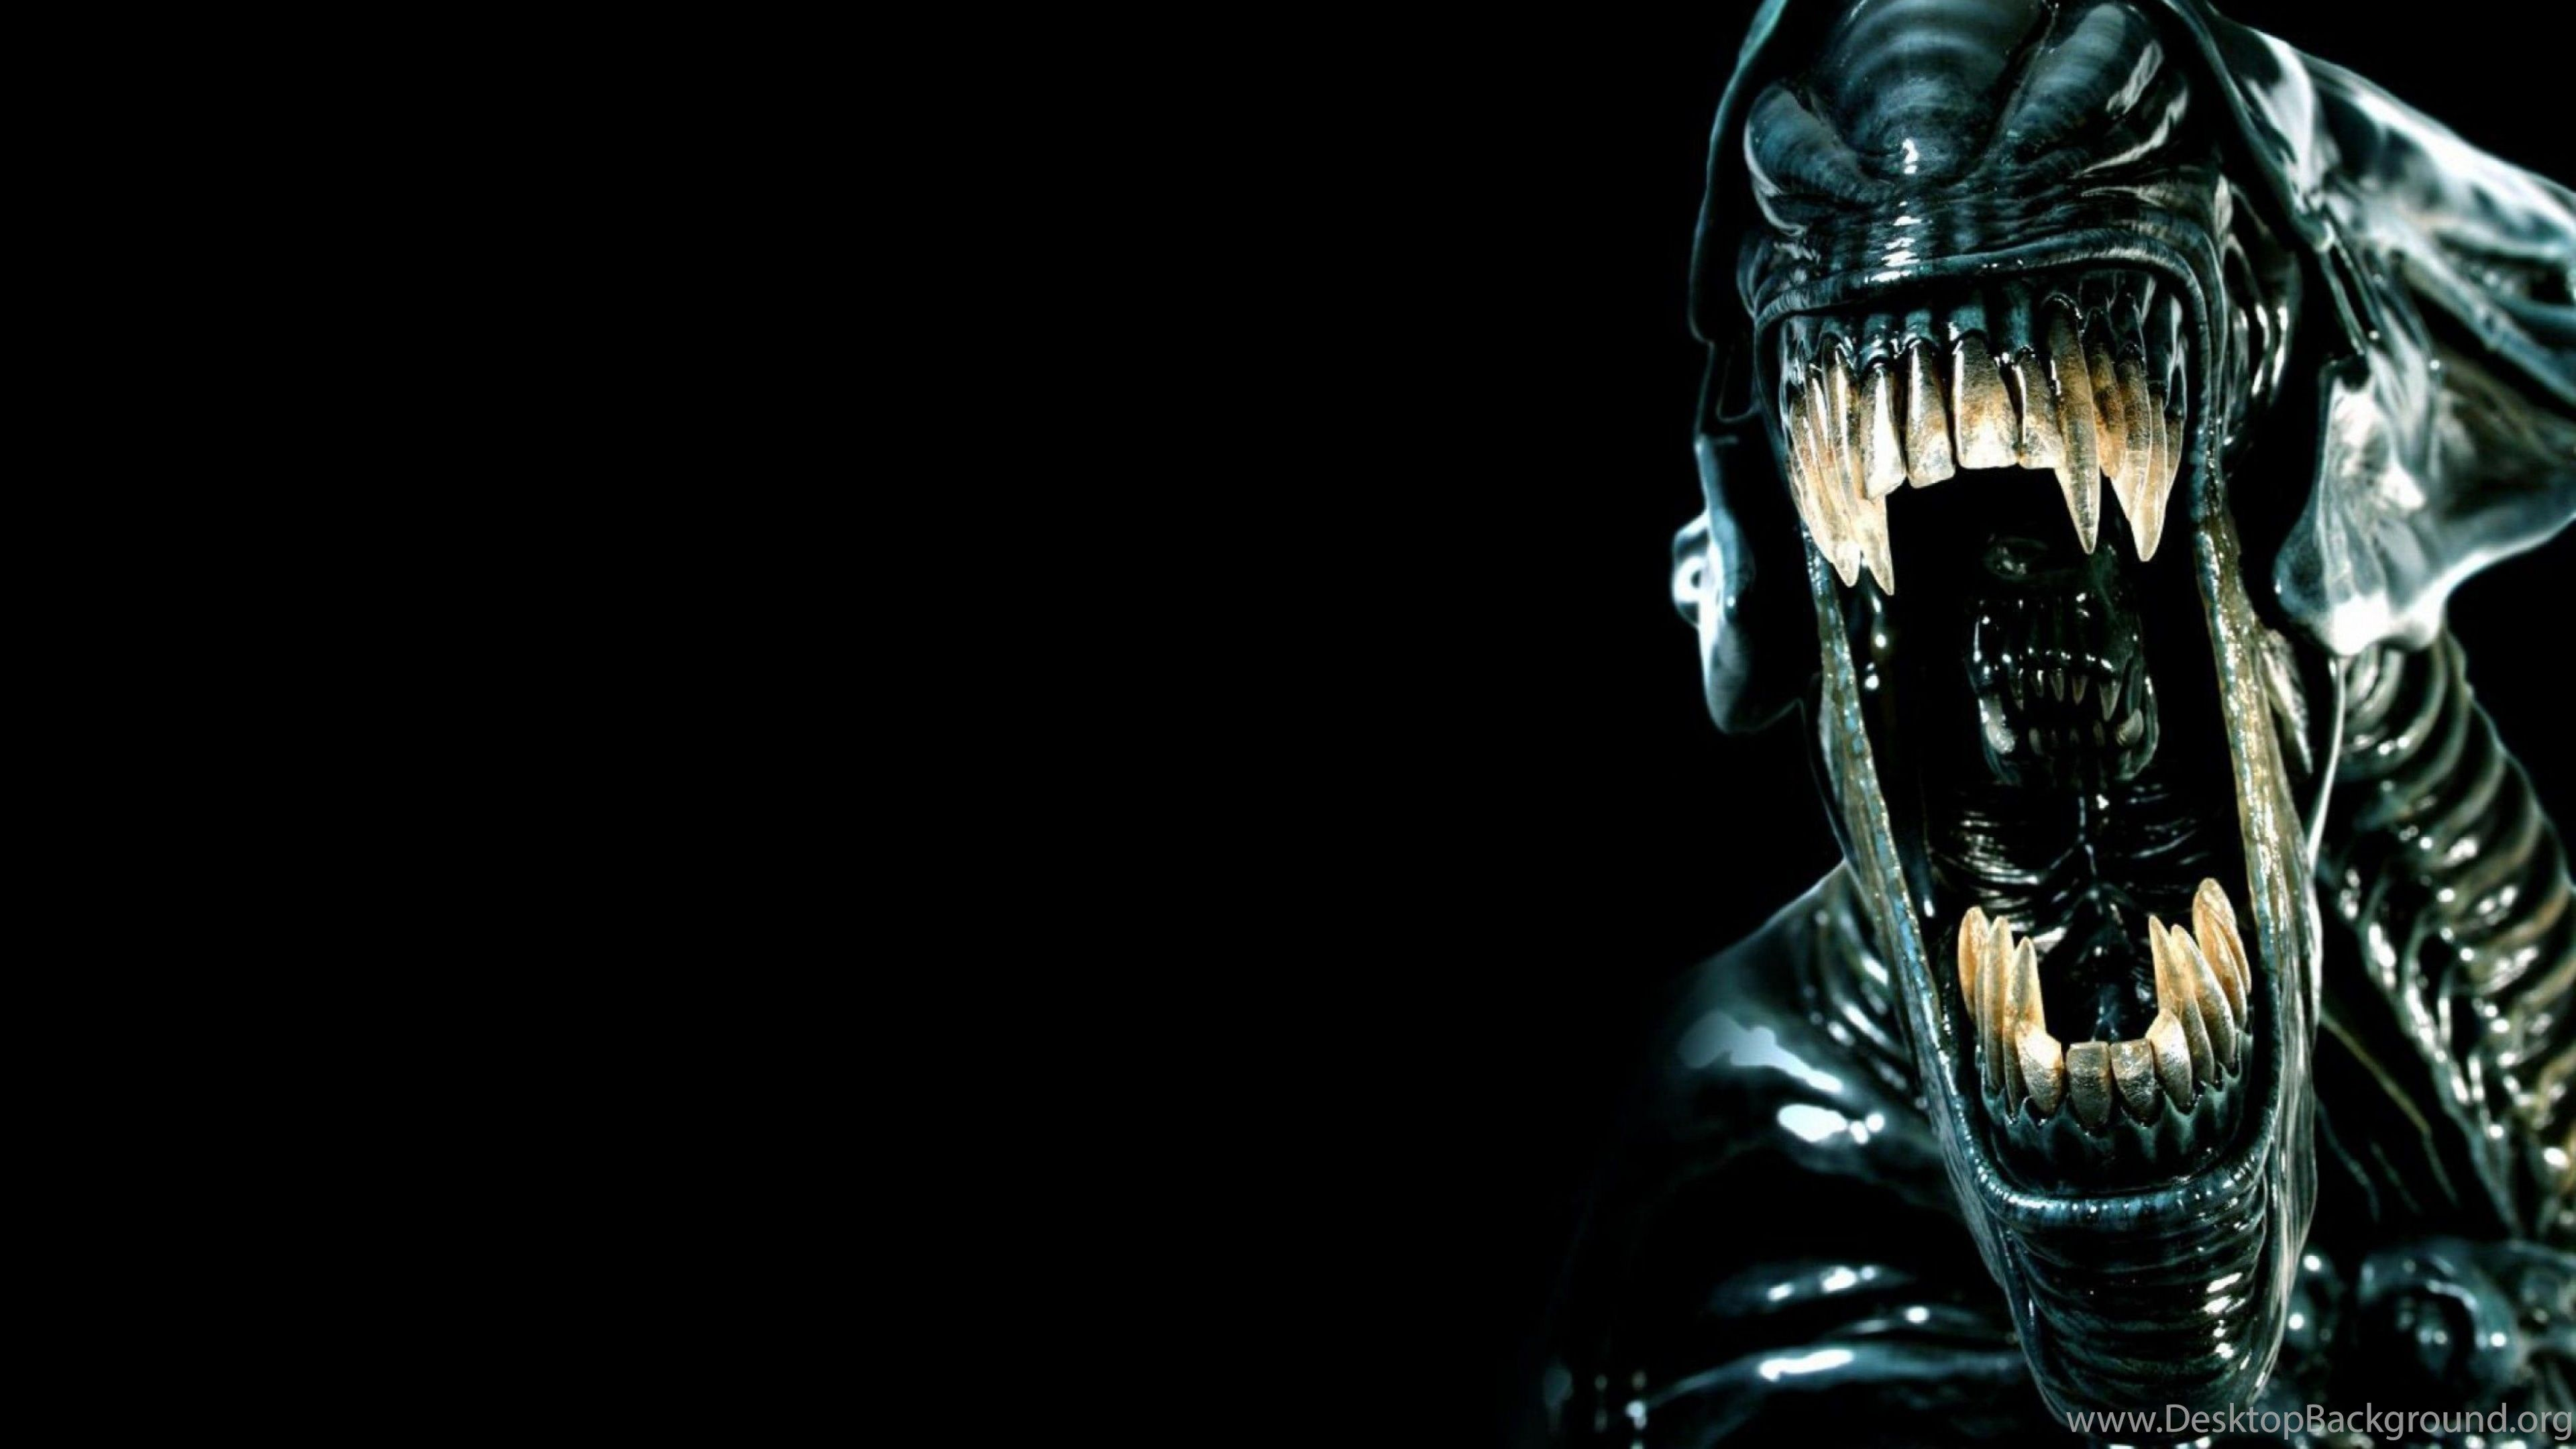 3840x2160 Alien Wallpapers Desktop Free Download Desktop Background